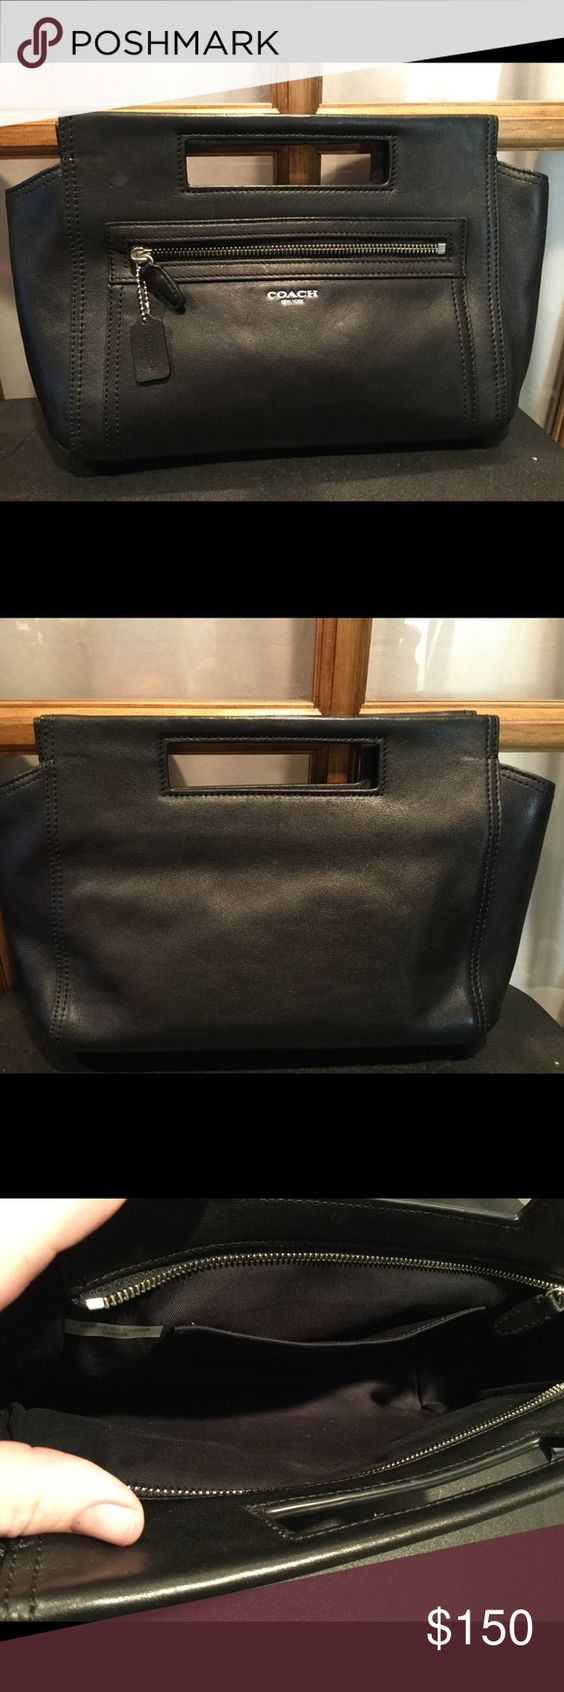 Coach Legacy black leather basket clutch Beautiful legacy leather - nickel hard wear,  from coach's best collection ever- evening clutch, 1 slight pocket inside this purse otherwise open, zippered closure, 1 outside zippered pocket as well Coach Bags Clutches & Wristlets